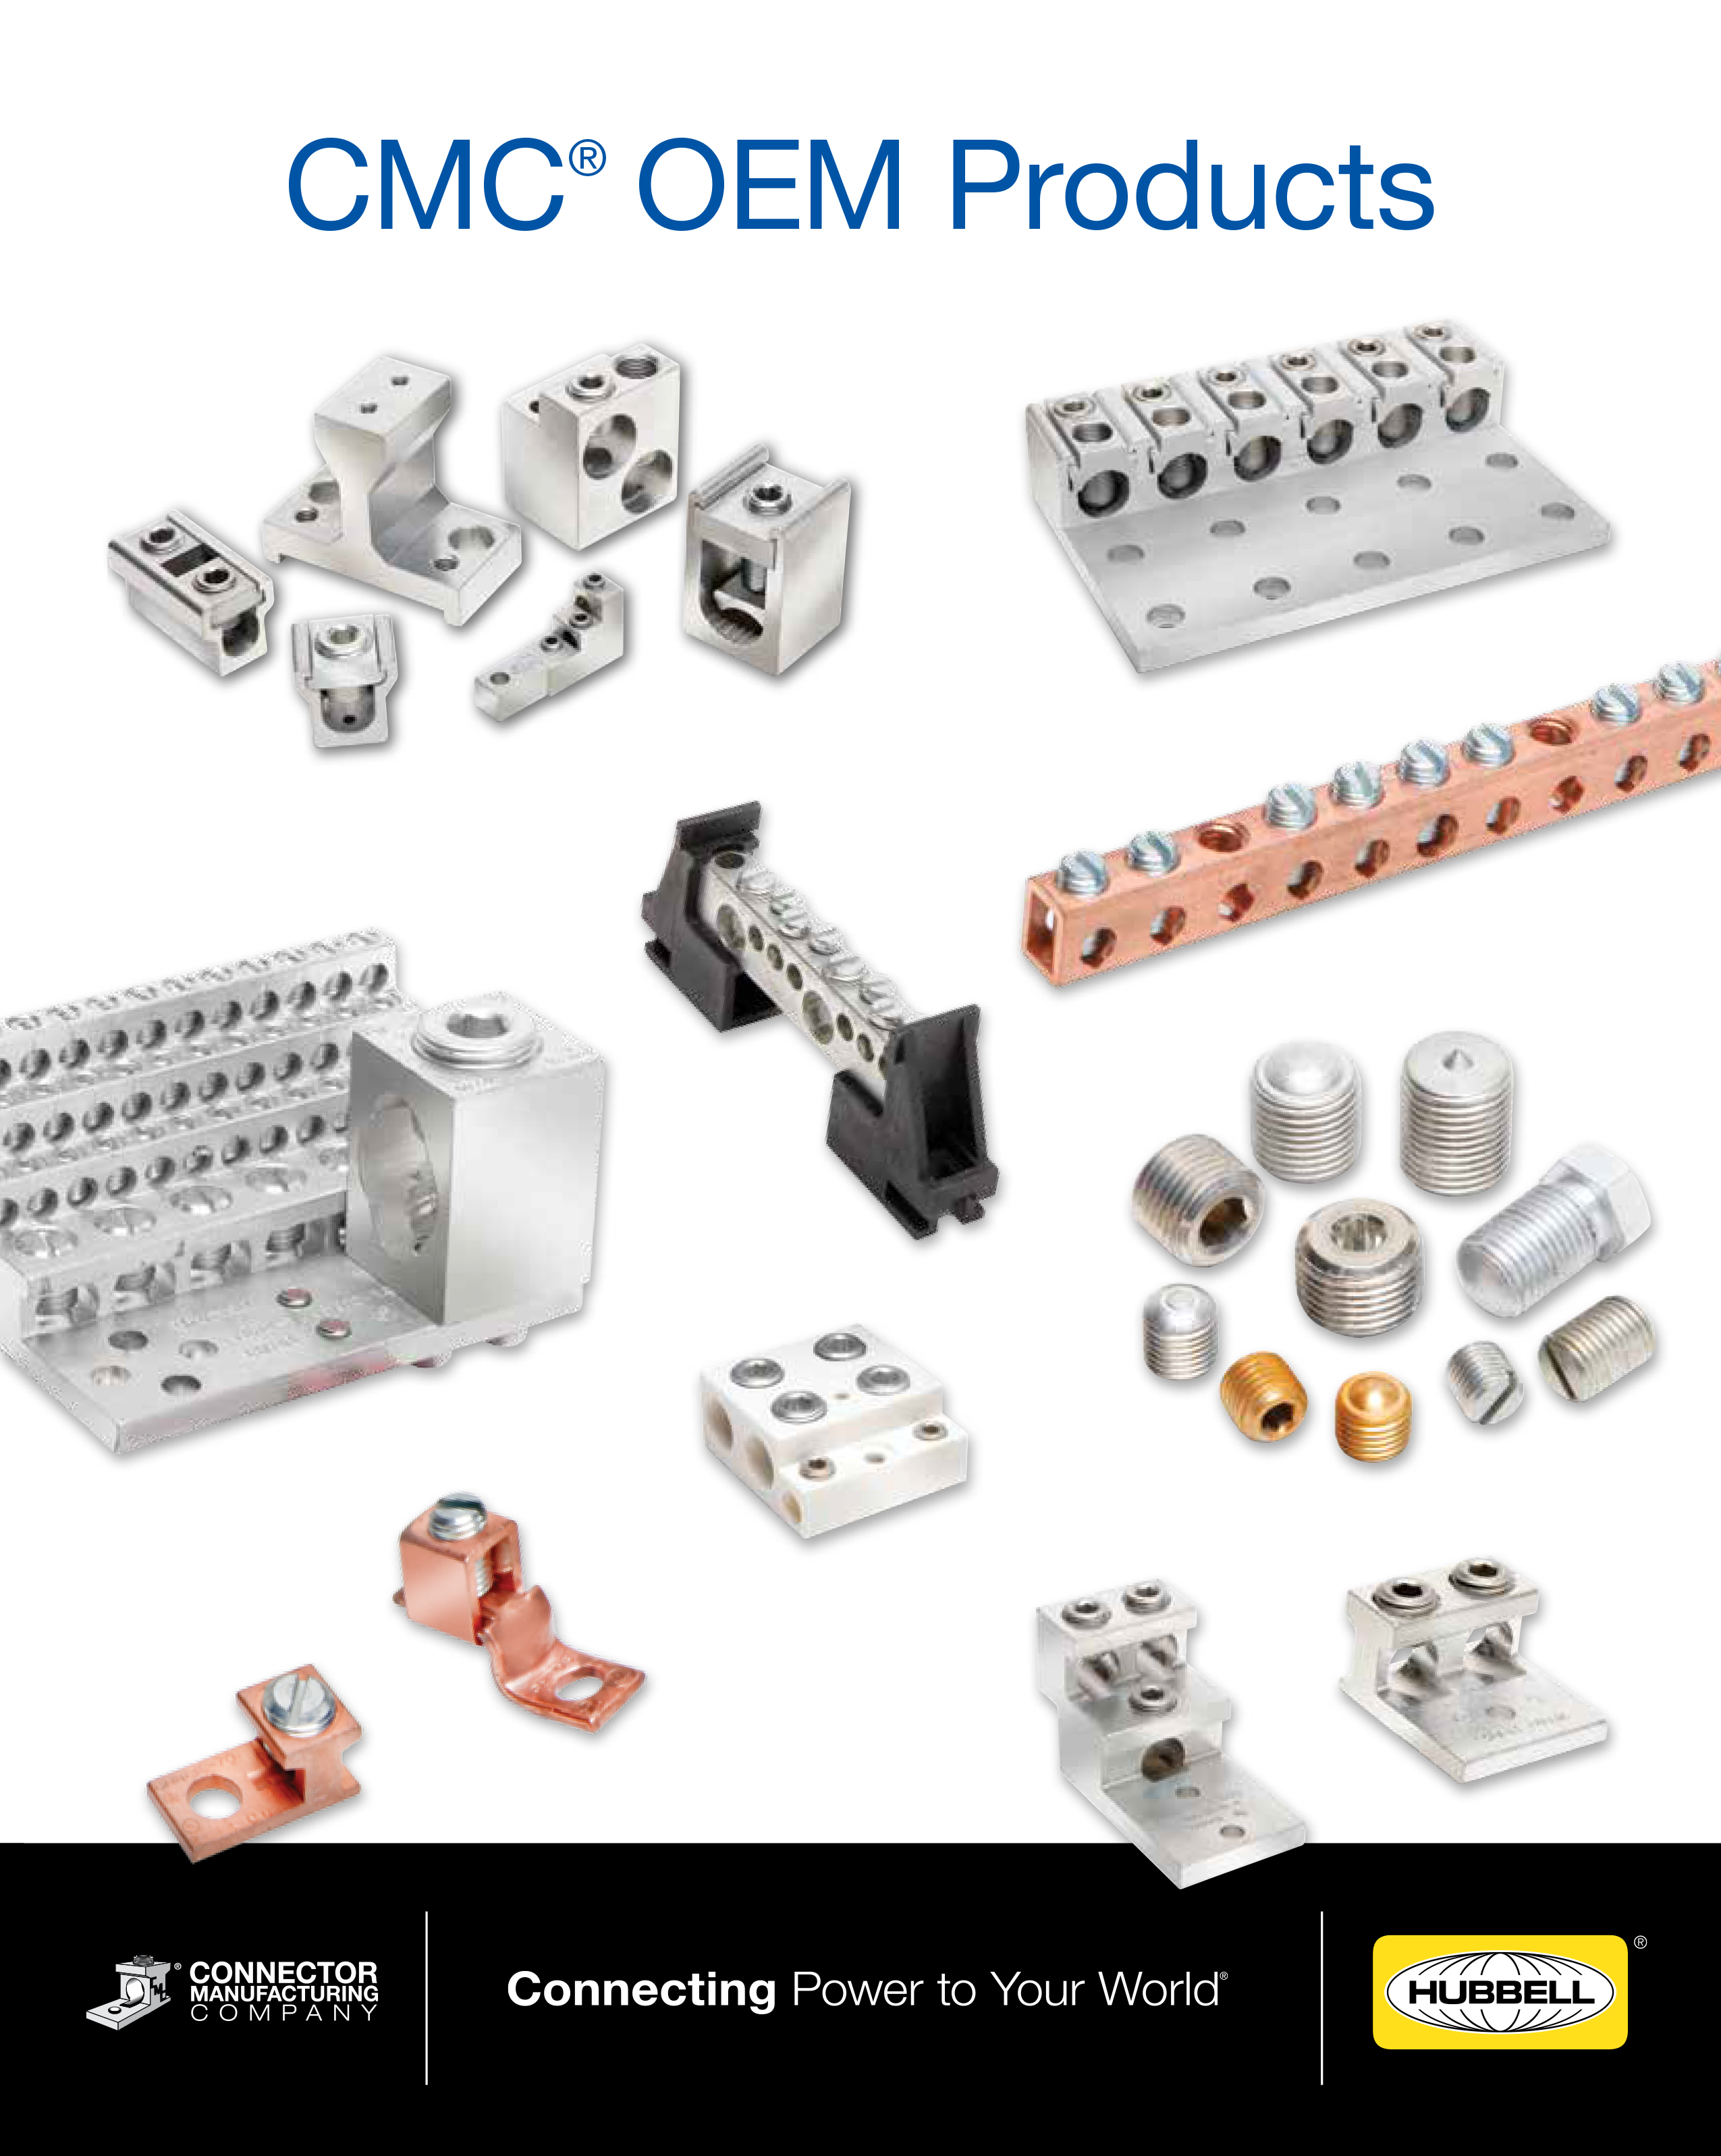 Connector Manufacturing Company